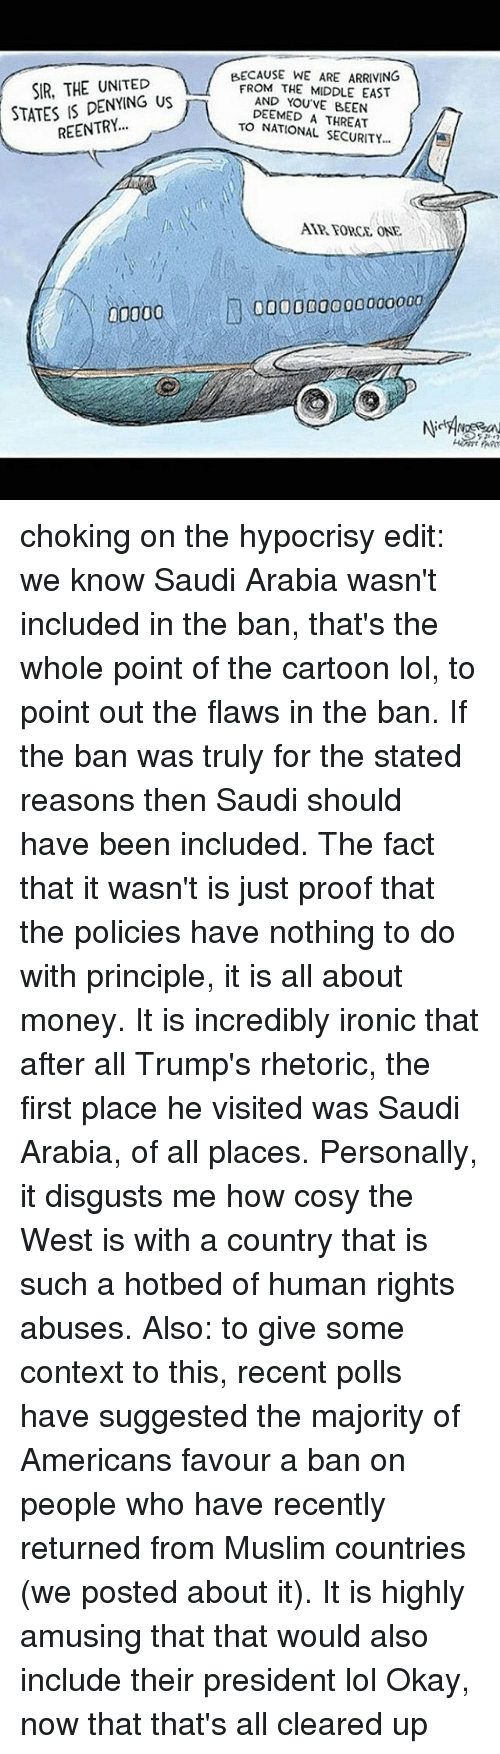 Proofs: BECAUSE WE ARE ARRIVING  SIR, THE UNITED  FROM THE MIDDLE EAST  STATES DENYING US  REENTRY  AND YOU VE BEEN  DEEMED THREAT  TO NATIONAL SECURITY...  FORCE, ONE  10000 000000000000000 choking on the hypocrisy edit: we know Saudi Arabia wasn't included in the ban, that's the whole point of the cartoon lol, to point out the flaws in the ban. If the ban was truly for the stated reasons then Saudi should have been included. The fact that it wasn't is just proof that the policies have nothing to do with principle, it is all about money. It is incredibly ironic that after all Trump's rhetoric, the first place he visited was Saudi Arabia, of all places. Personally, it disgusts me how cosy the West is with a country that is such a hotbed of human rights abuses. Also: to give some context to this, recent polls have suggested the majority of Americans favour a ban on people who have recently returned from Muslim countries (we posted about it). It is highly amusing that that would also include their president lol Okay, now that that's all cleared up